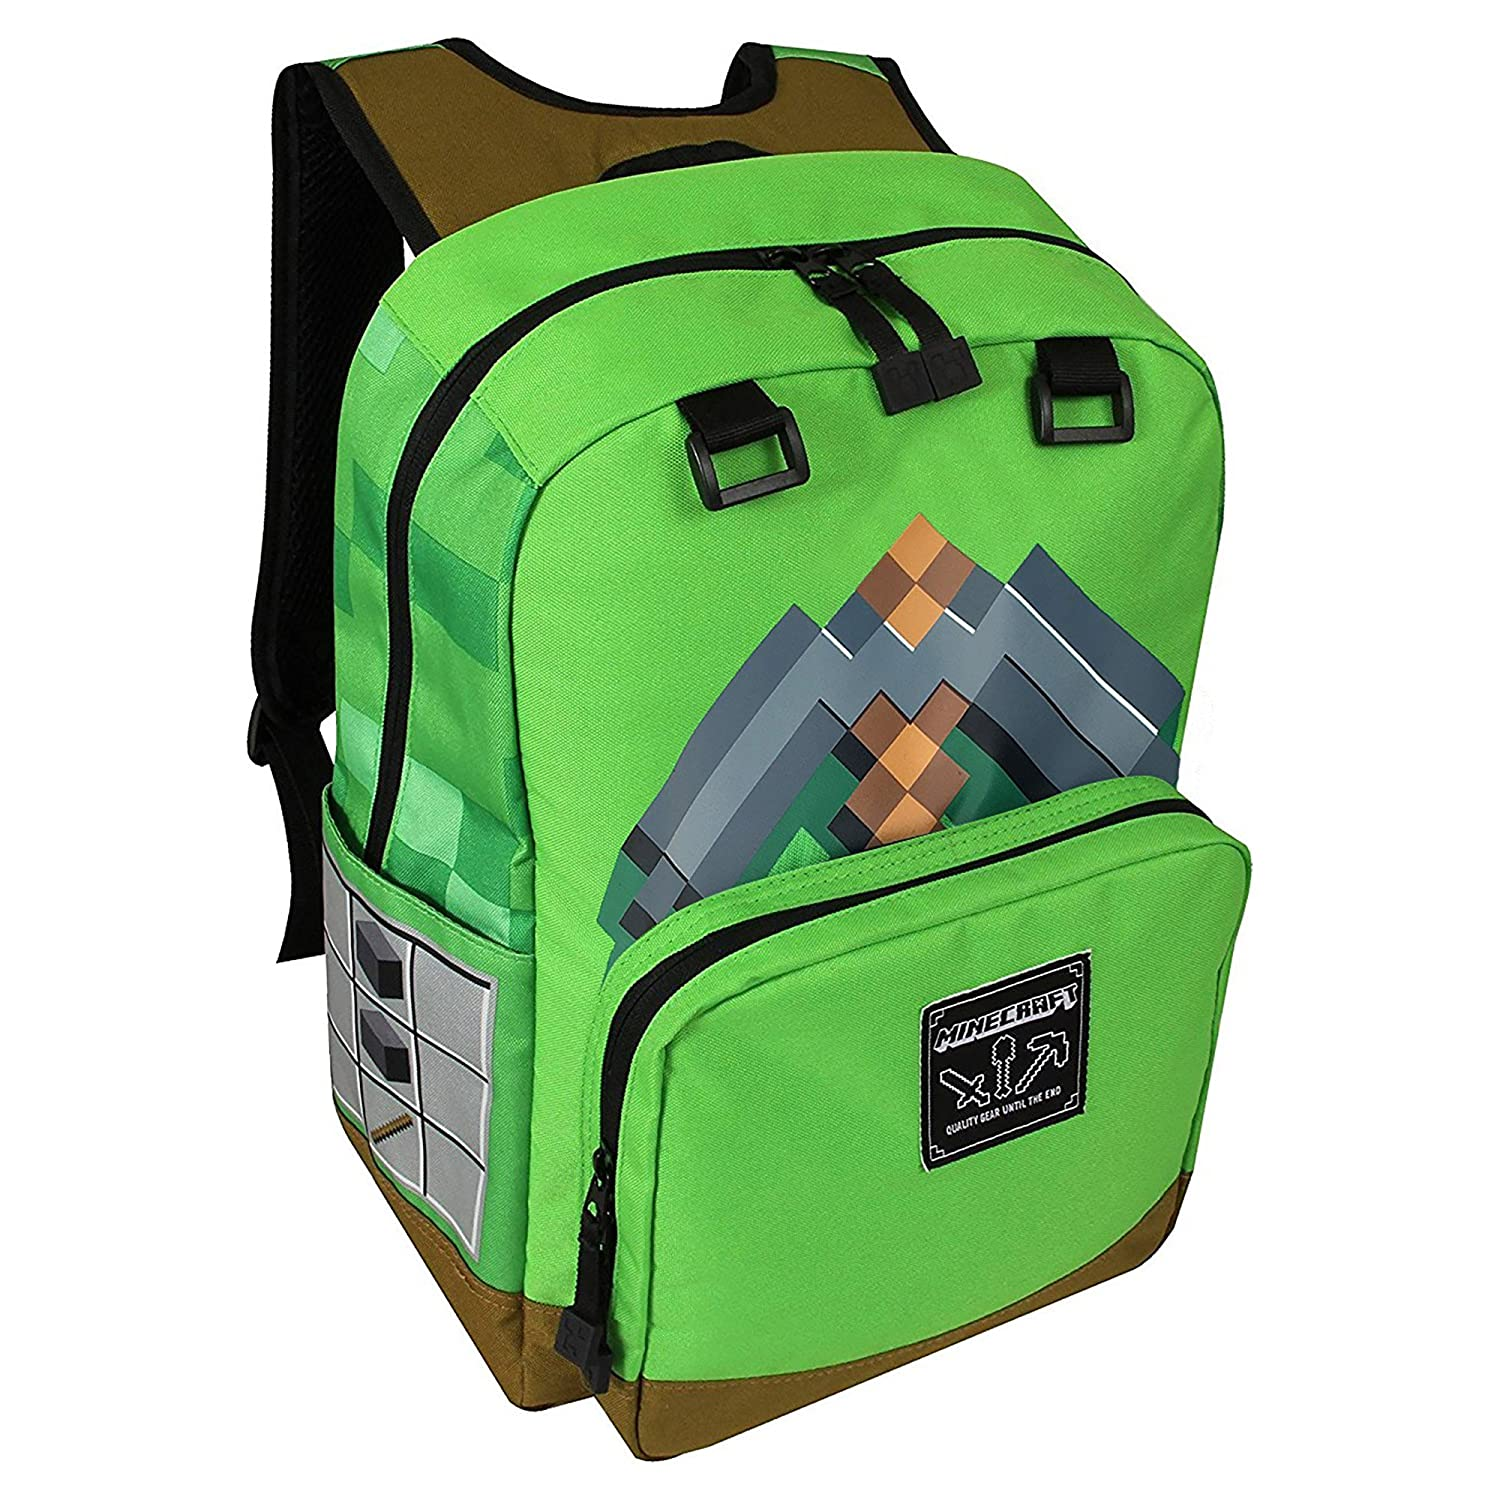 JINX Minecraft Pickaxe Adventure Kids Backpack (Green, 17) for School, Camping, Travel, Outdoors & Fun (Green, N/A) 17) for School 8.0641E+11